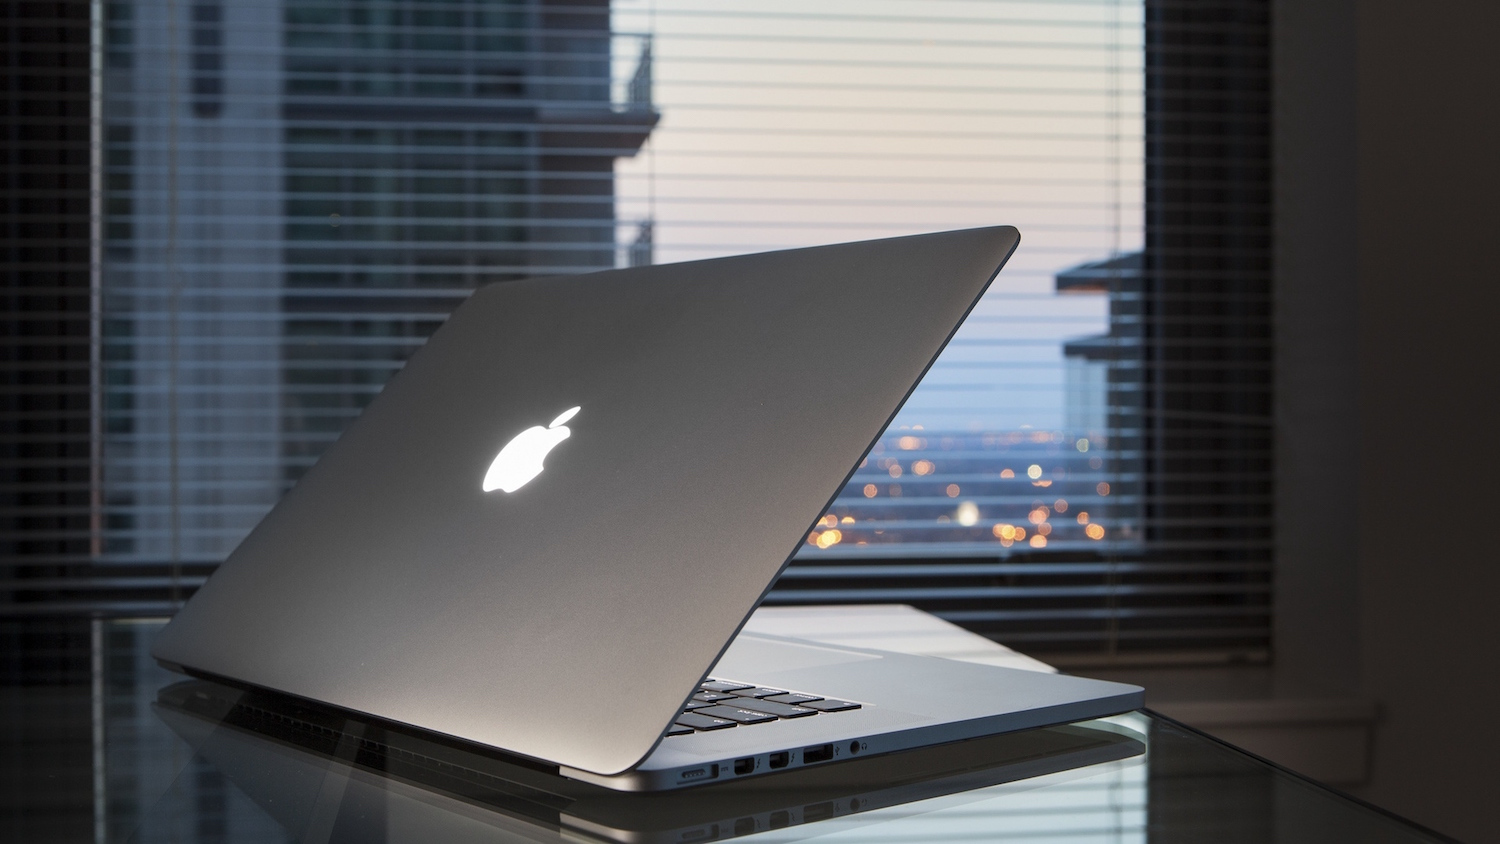 When to change the battery in a MacBook? El Capitan will tell